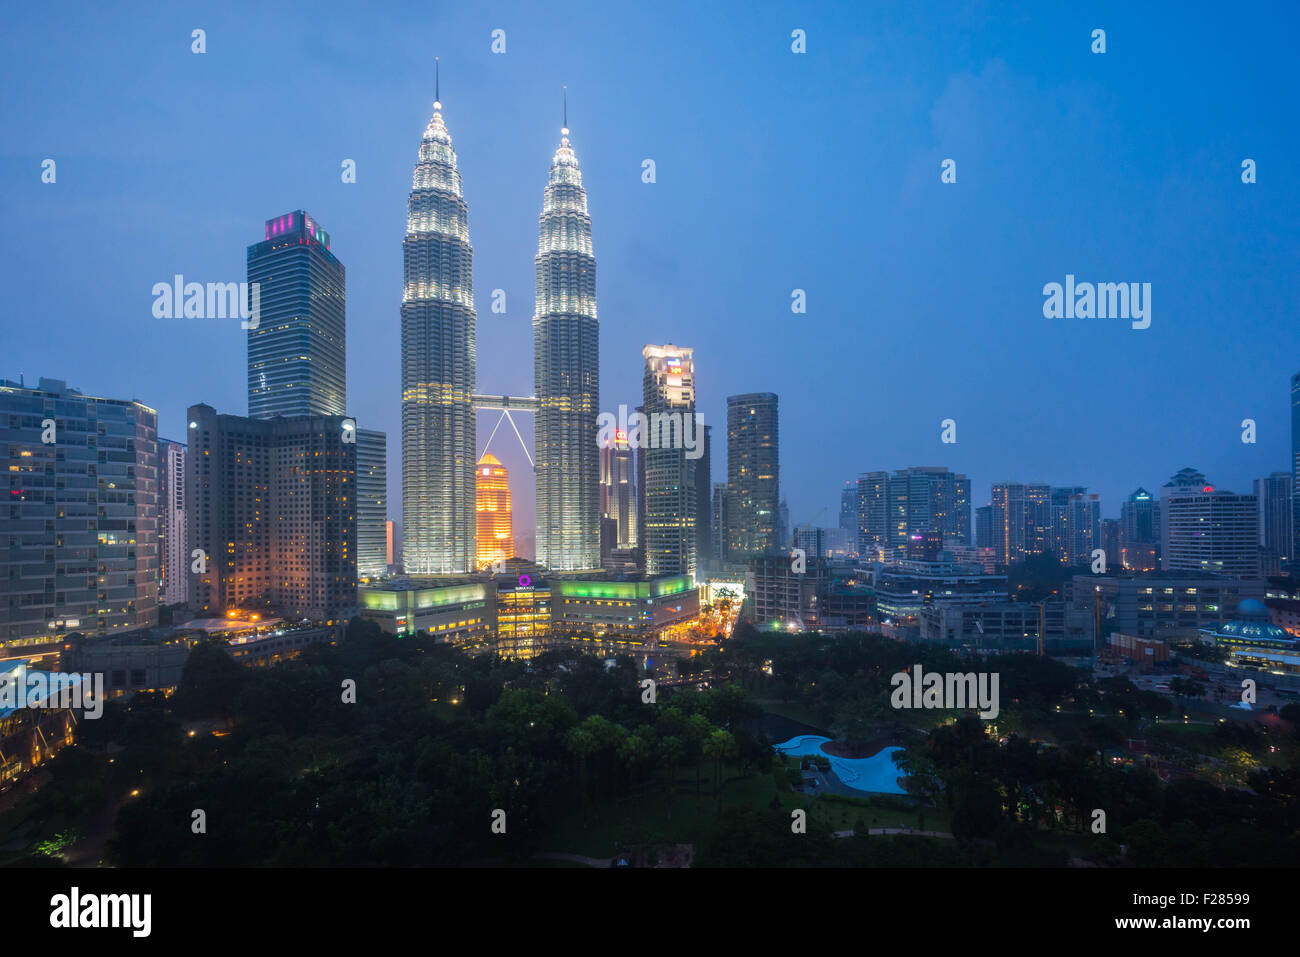 he petronas twin towers klcc at sunset blue hour seen from the traders skybar - Stock Image